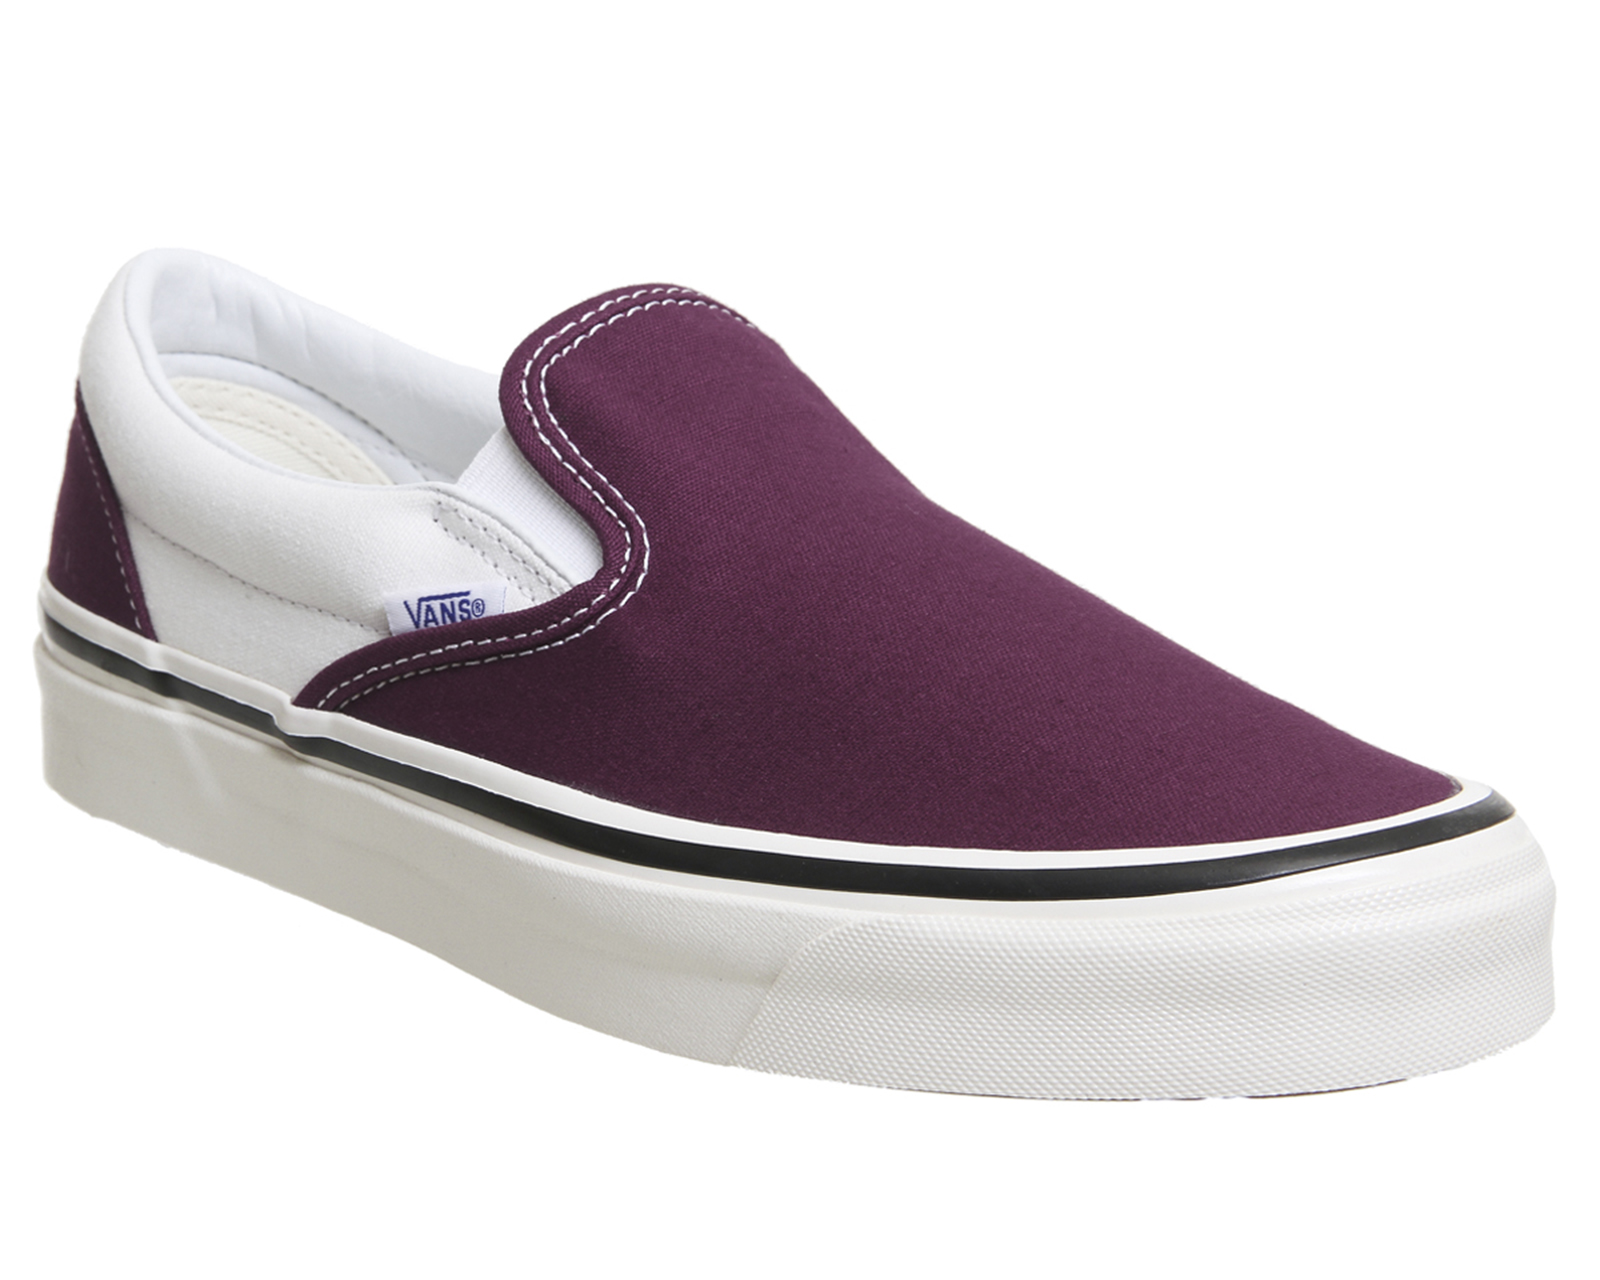 Sentinel Vans Classic Slip On 98 Dx Trainers Og Burgundy White Trainers  Shoes d1460ef64